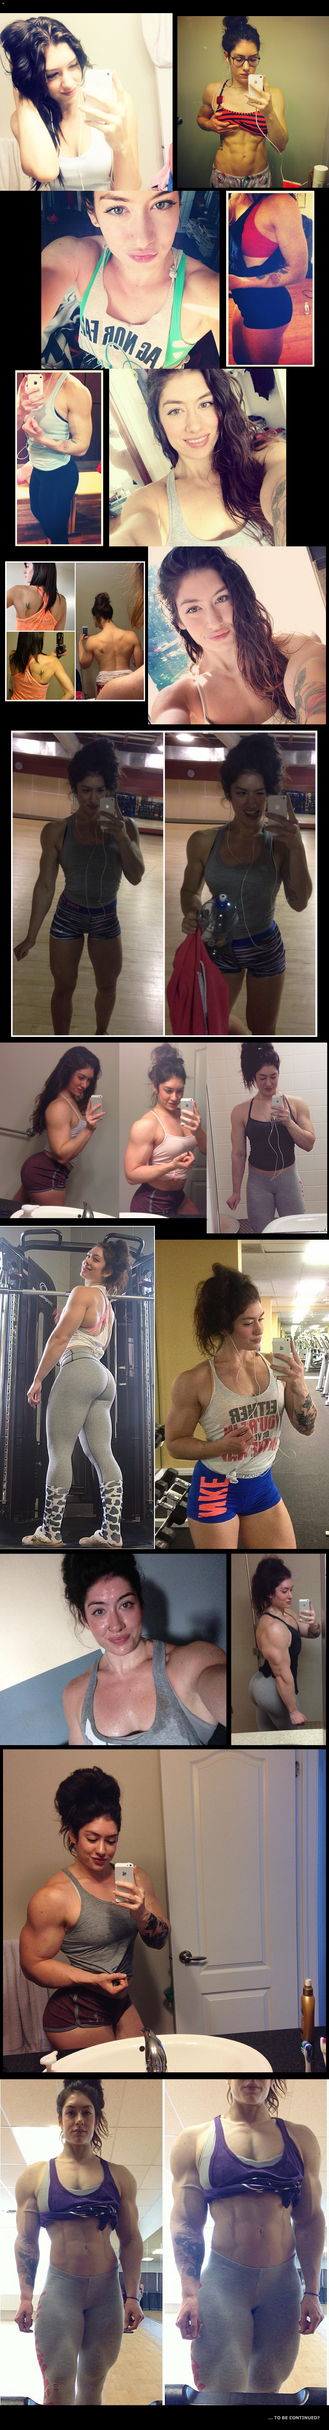 A Girl's Journey from Skinny to Buff ...and Beyond by stopwhereyouare